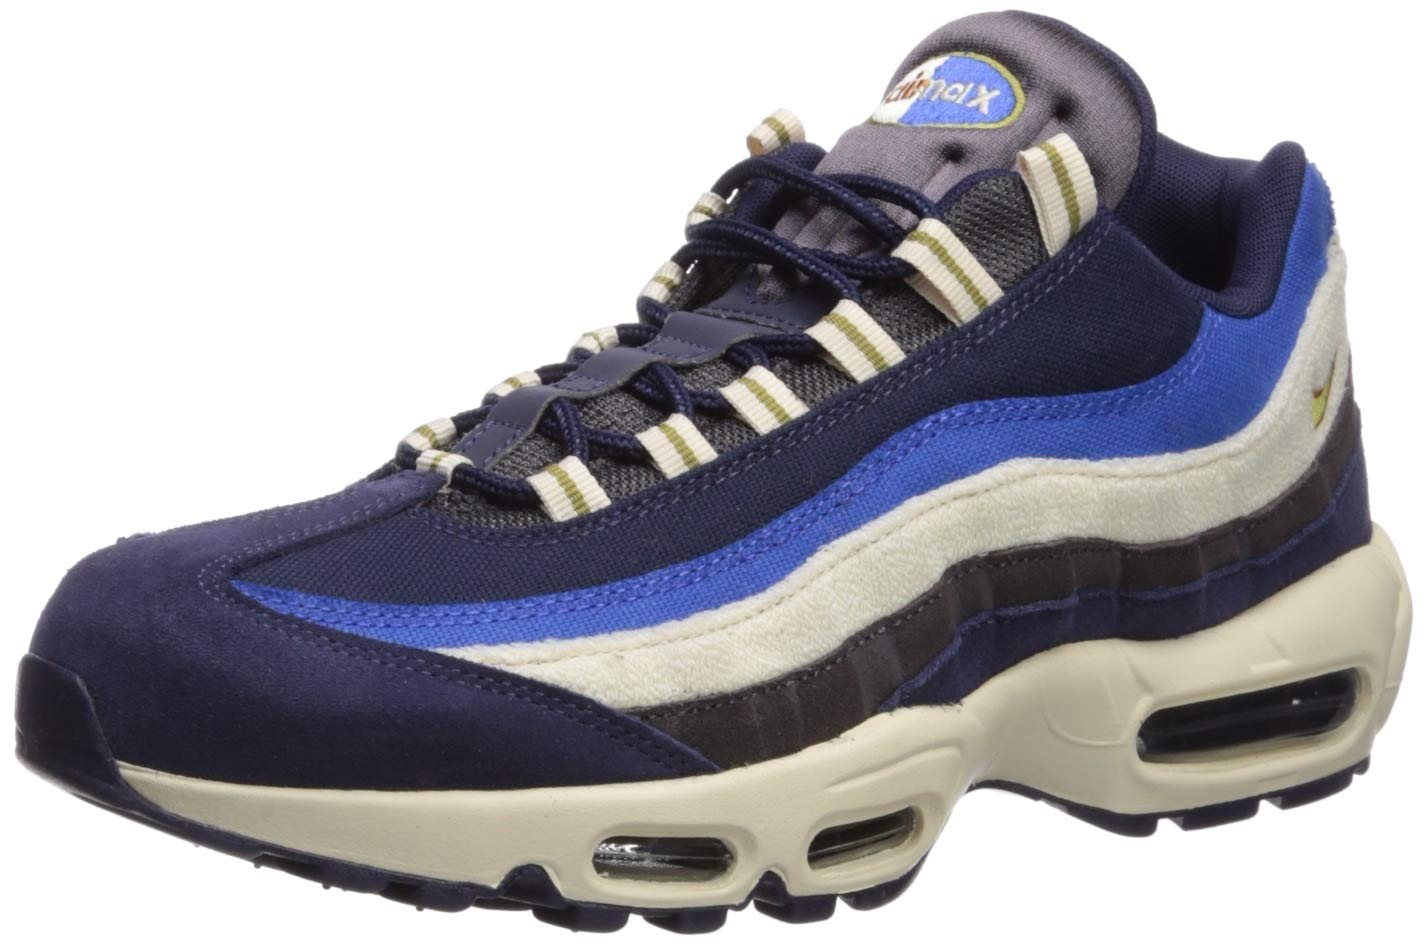 Nike Men's Air Max 95 PRM Blackened BlueCamper GreenMonarch 538416 404 (Size: 9)